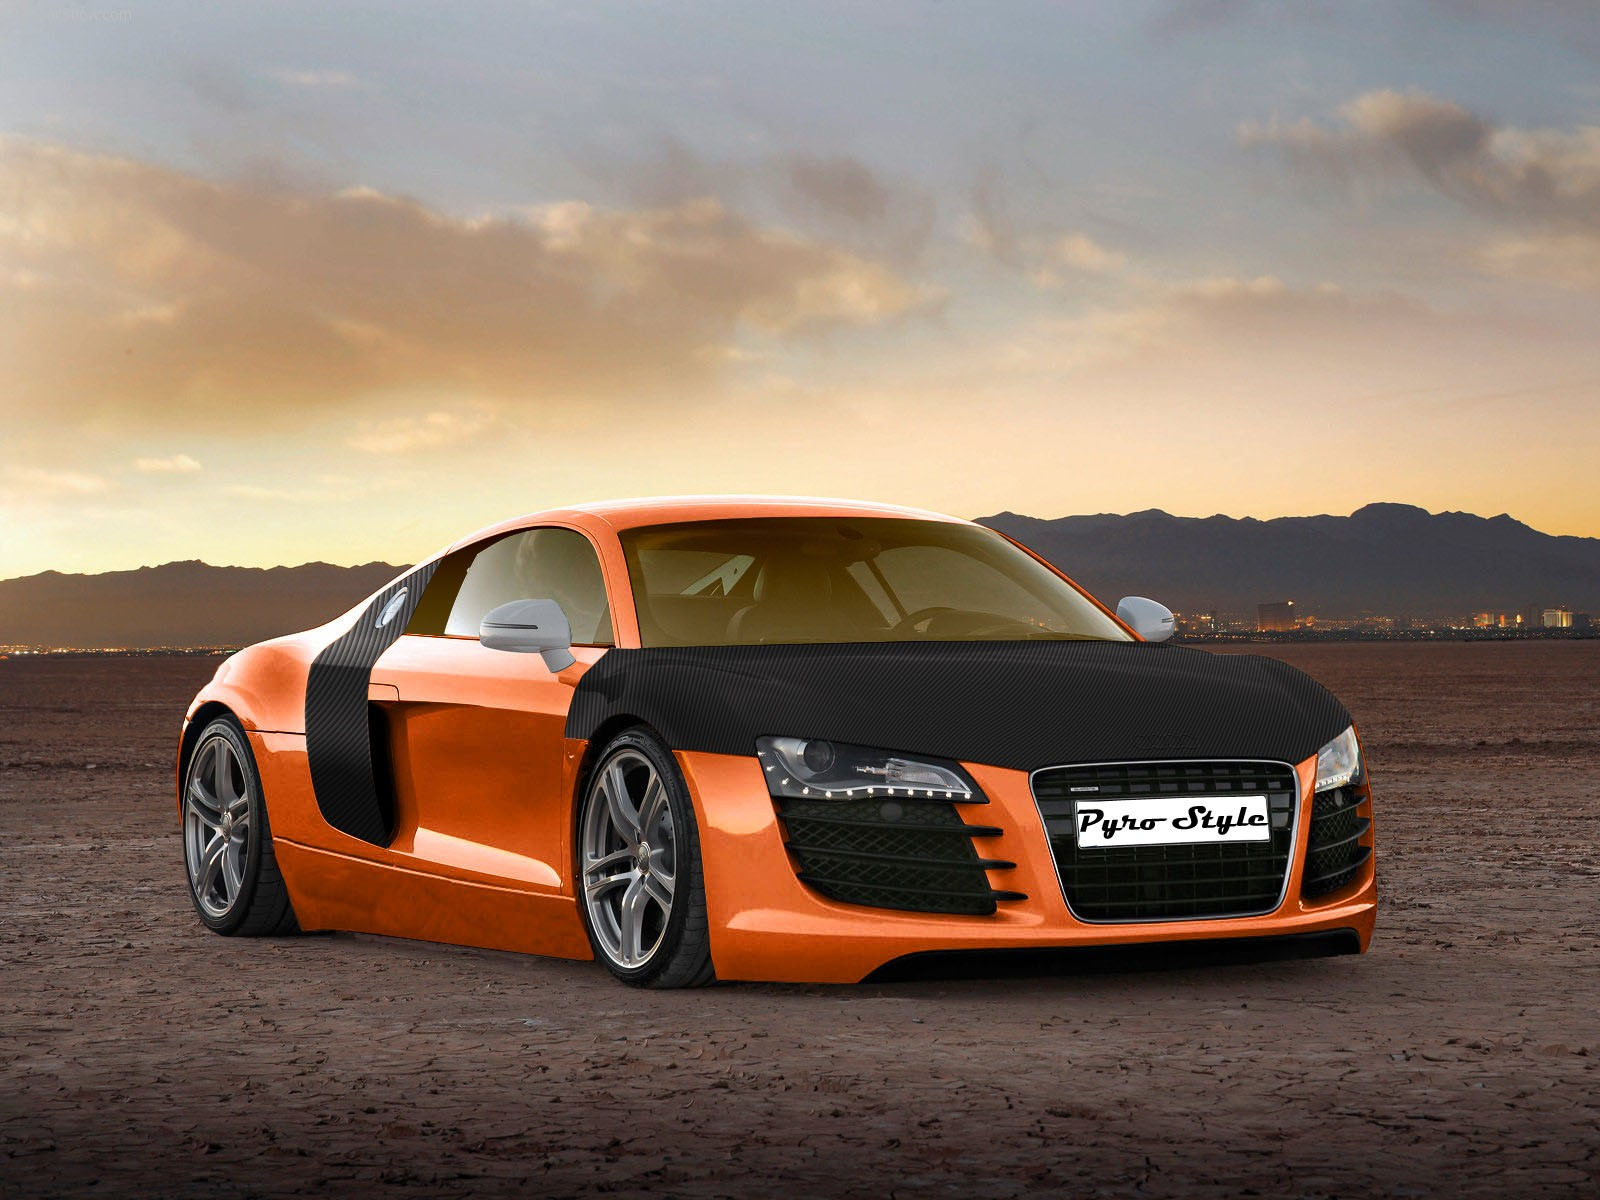 audi r8 wallpaper Pictures Of Cars Hd 1600x1200